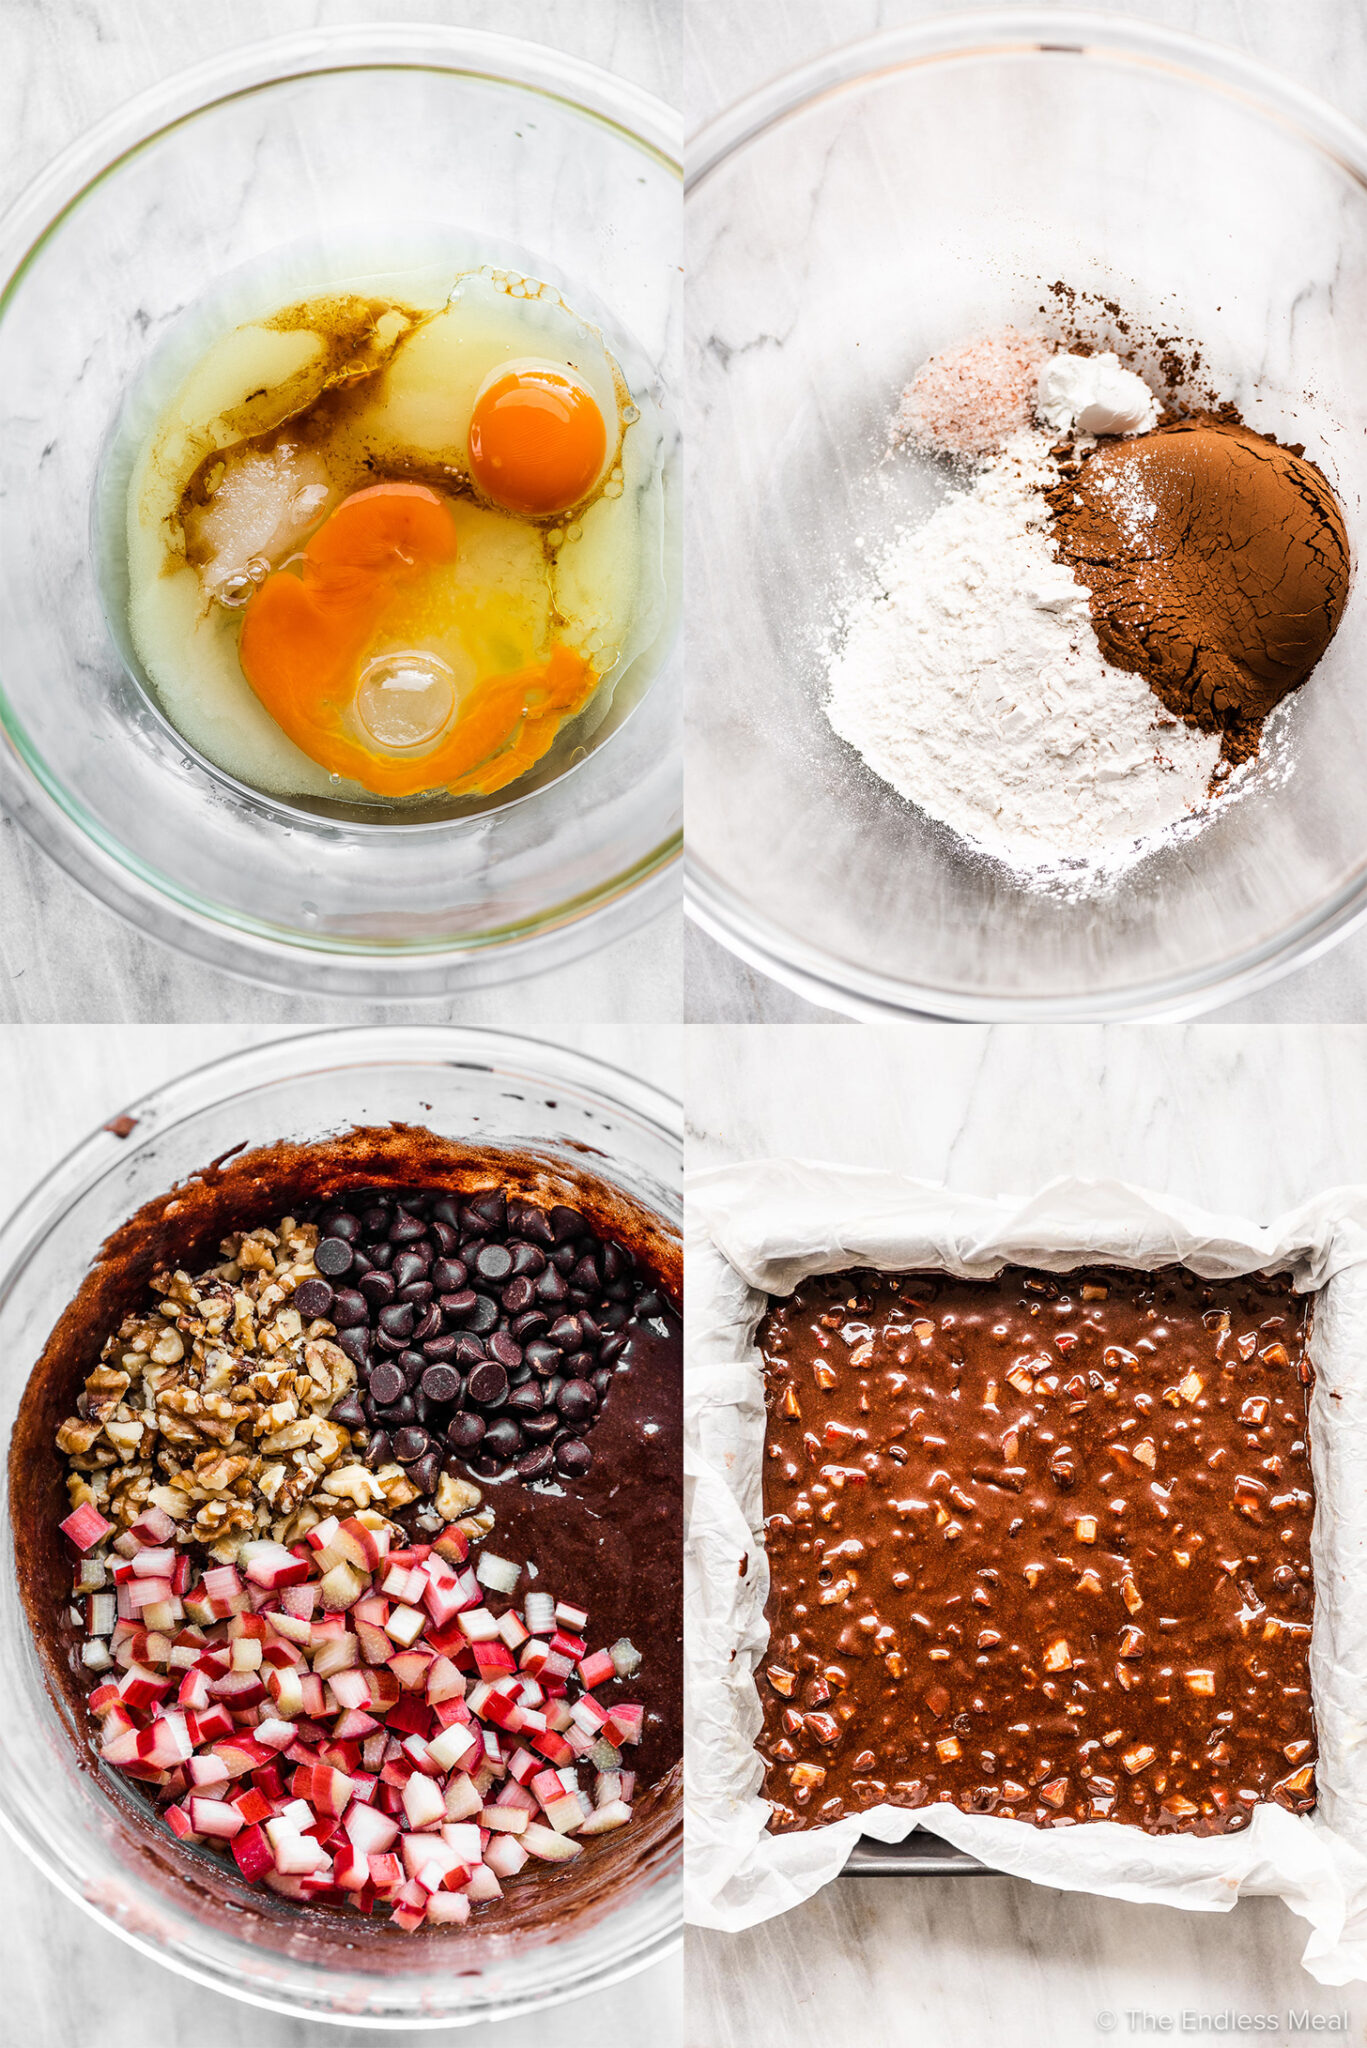 4 pictures showing how to make chocolate rhubarb brownies.